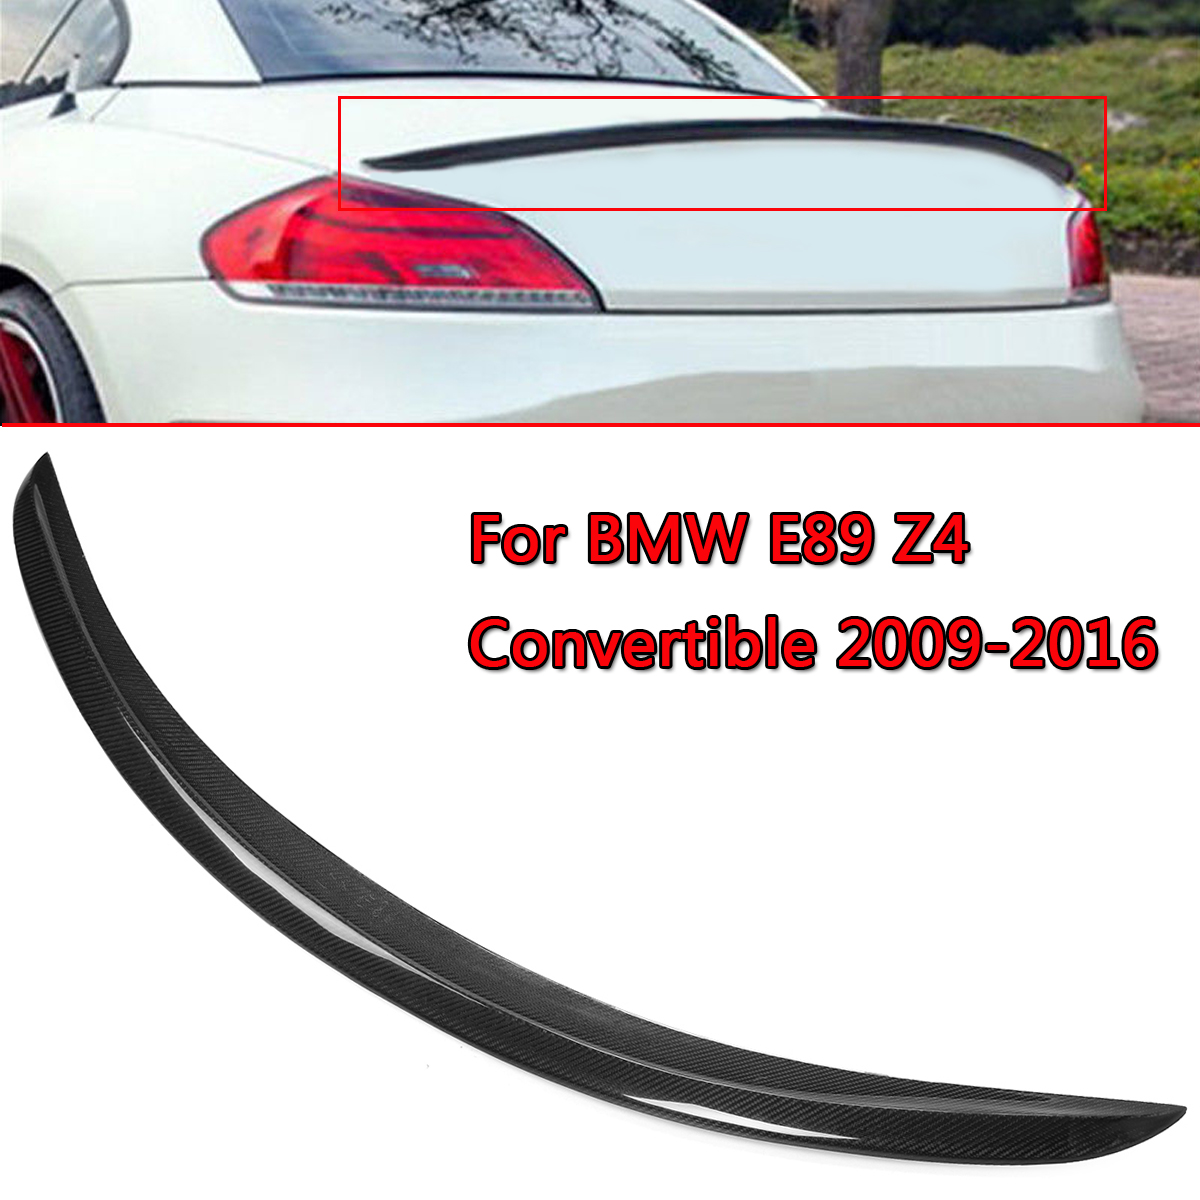 New Real Carbon Fiber Trunk Lip Spoiler Wing For BMW E89 Z4 Convertible 2009-2016 Gloss Black Rear Roof Wing SpoilerNew Real Carbon Fiber Trunk Lip Spoiler Wing For BMW E89 Z4 Convertible 2009-2016 Gloss Black Rear Roof Wing Spoiler